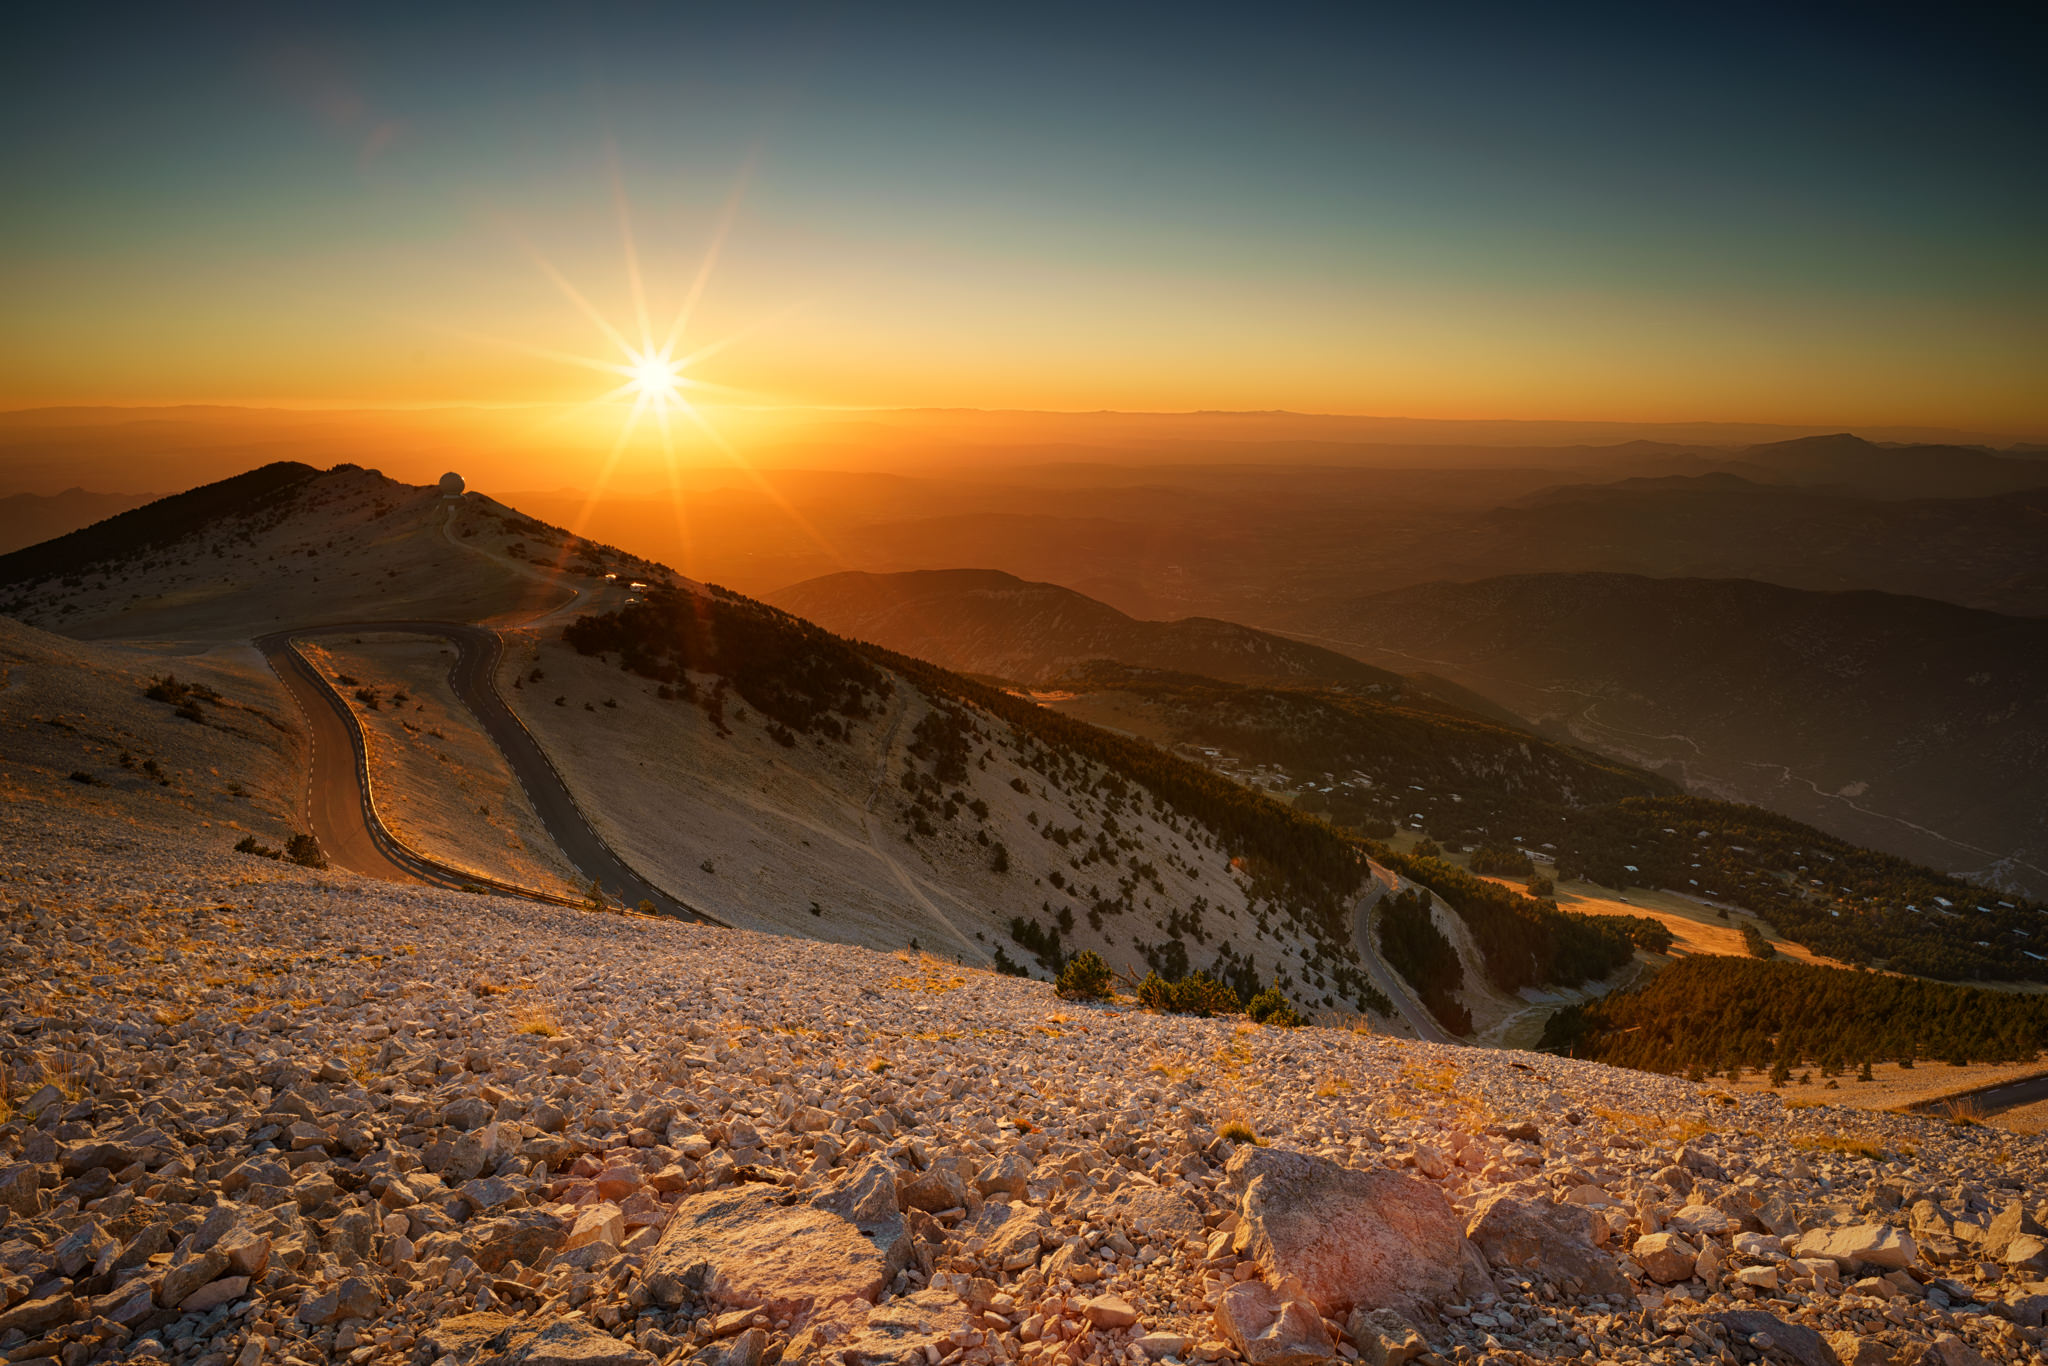 Sunset at Mt Ventoux